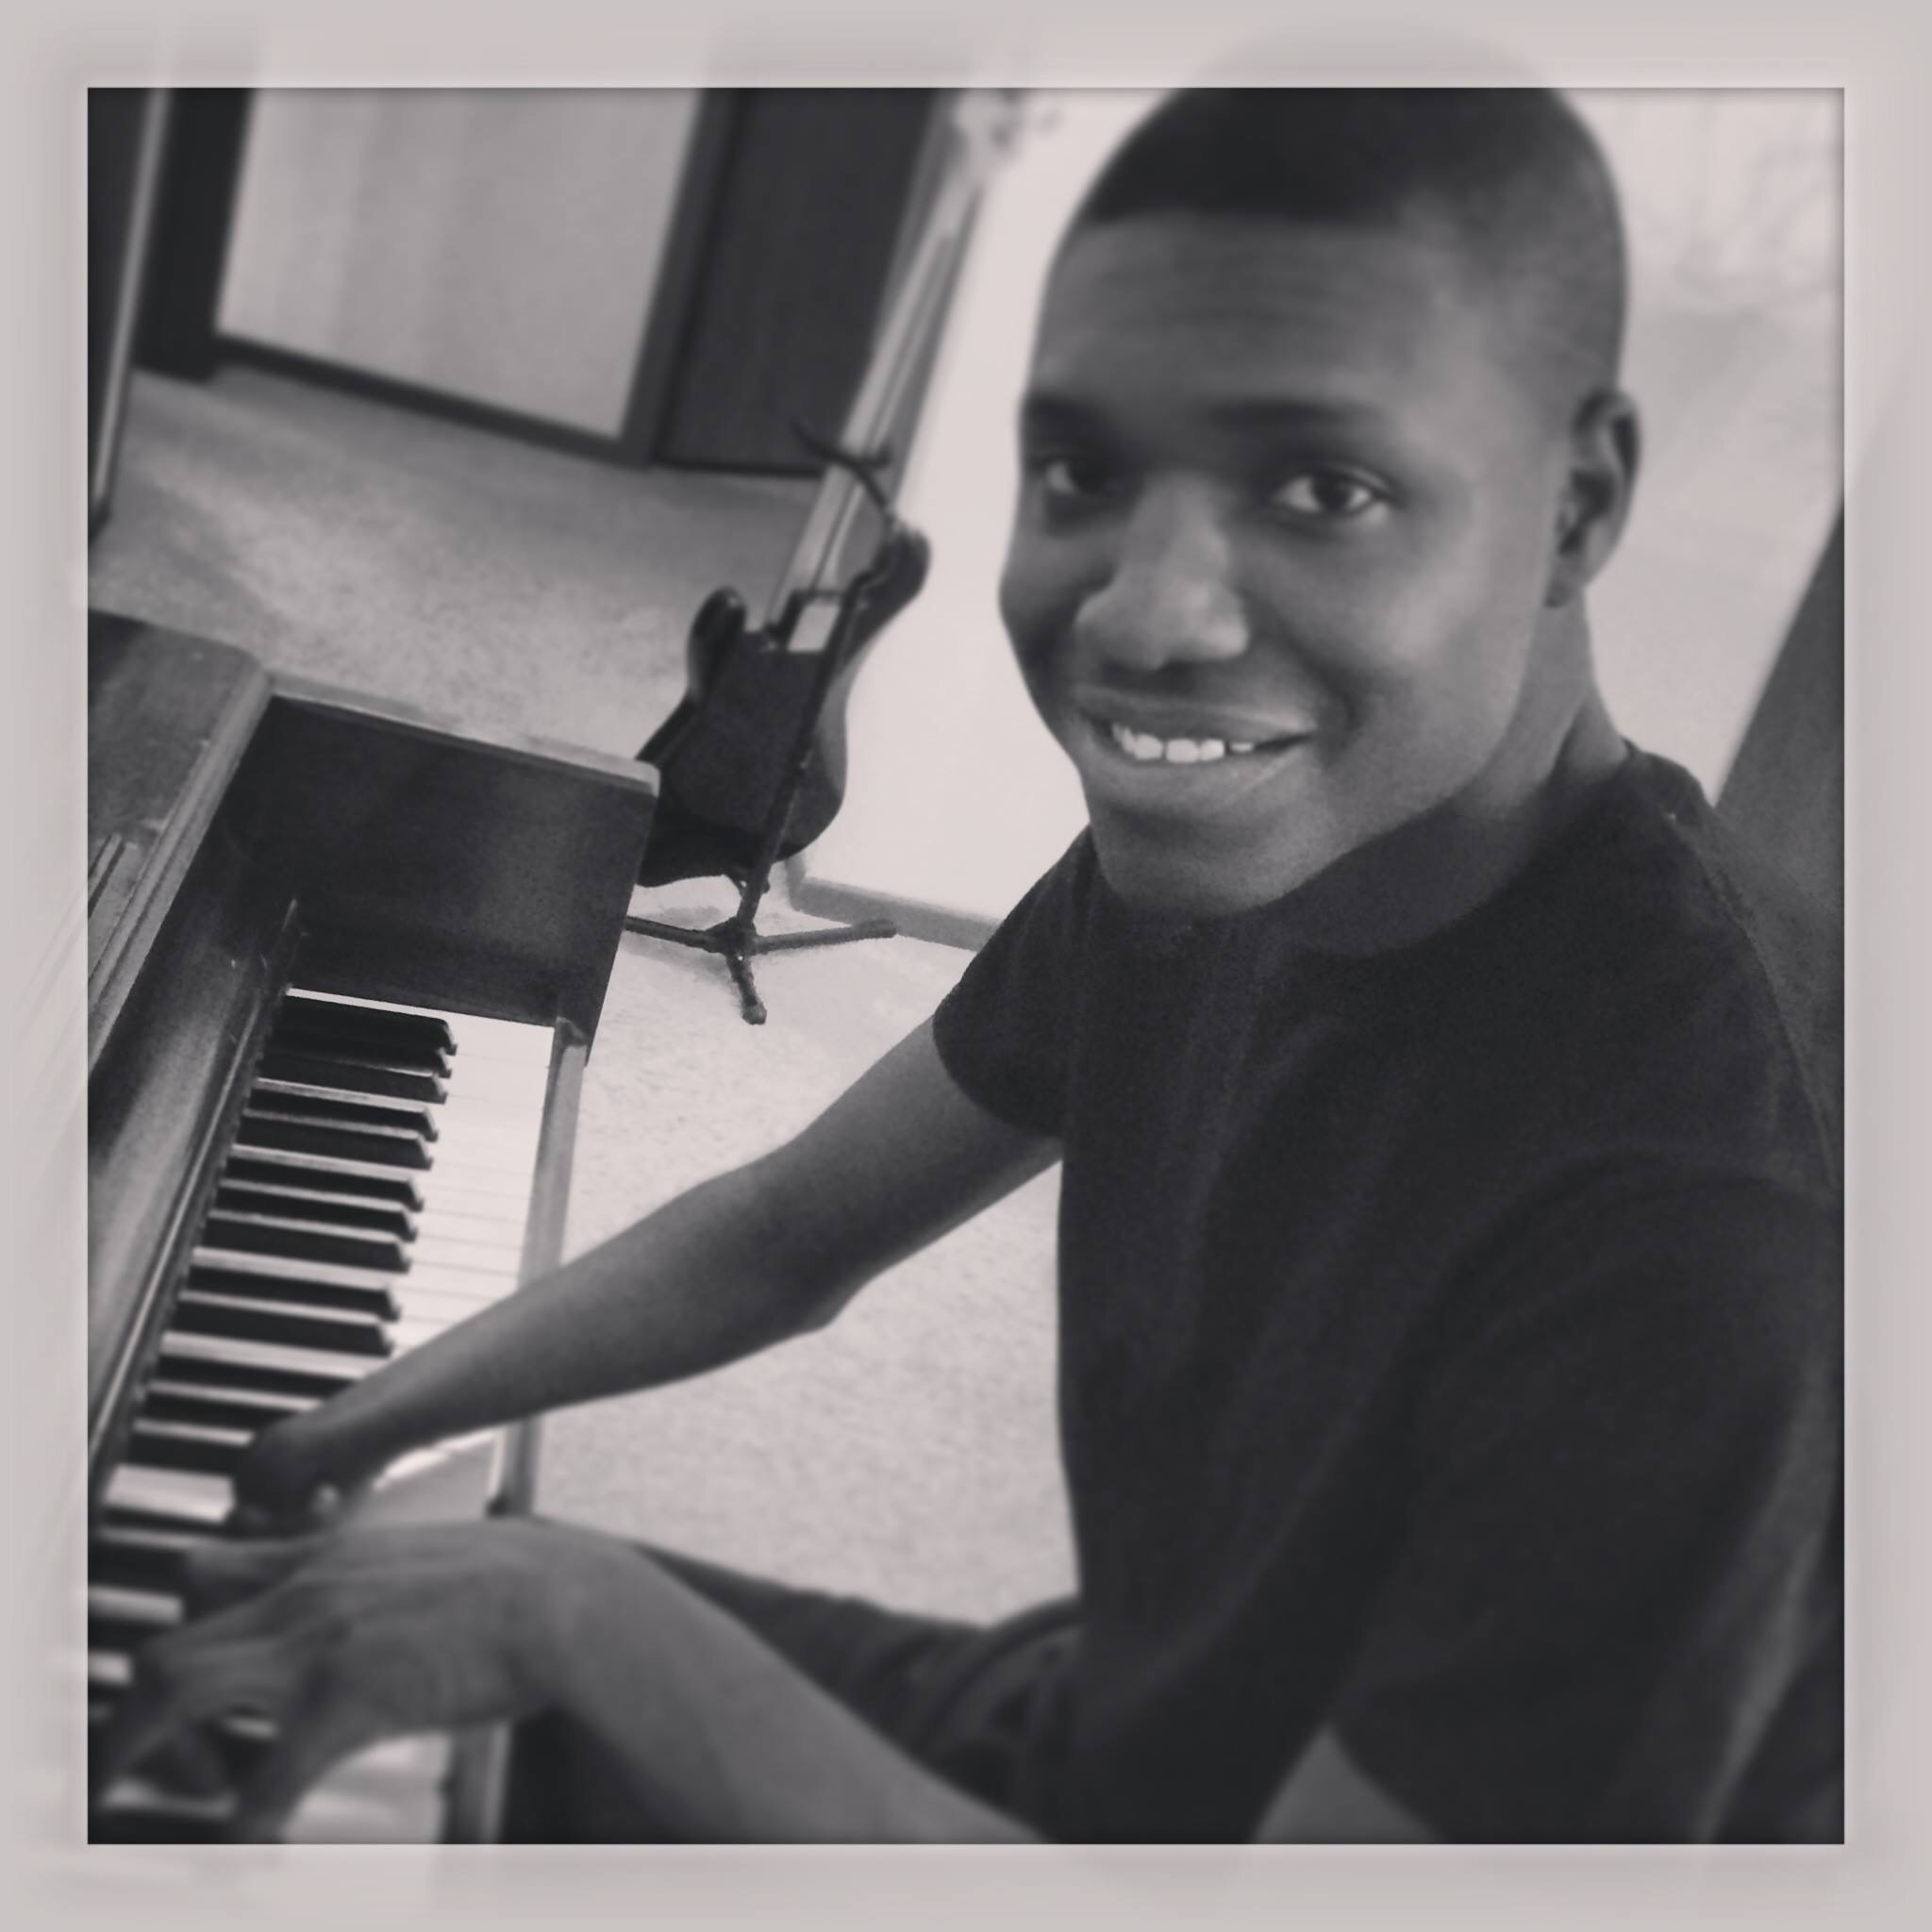 5-fingered pianist Jerome Jackson shares what inspires him